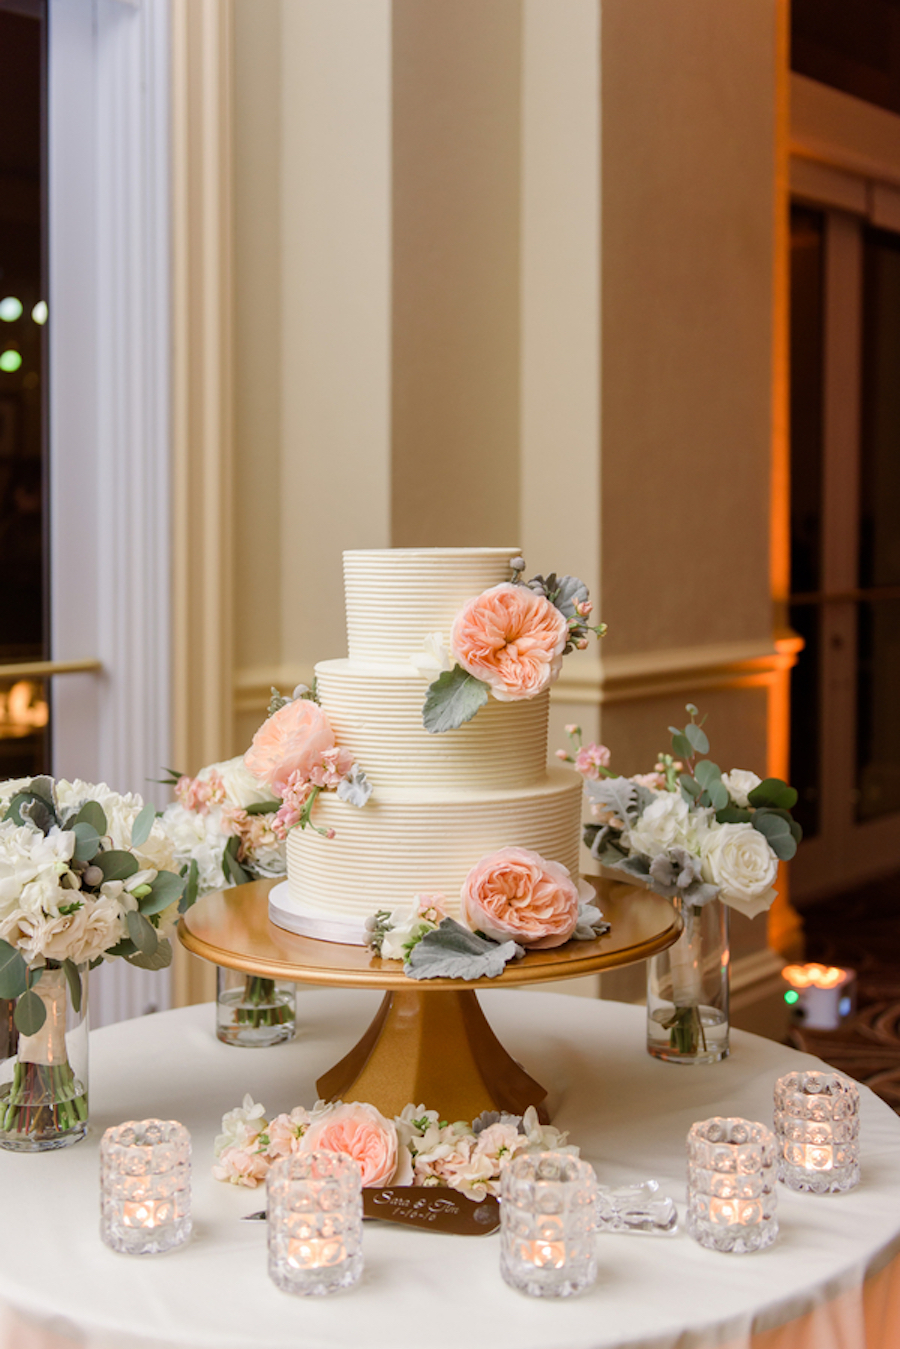 Three Tiered, White Wedding Cake with Blush, Coral Peony Flower Accents with Succulent Greenery